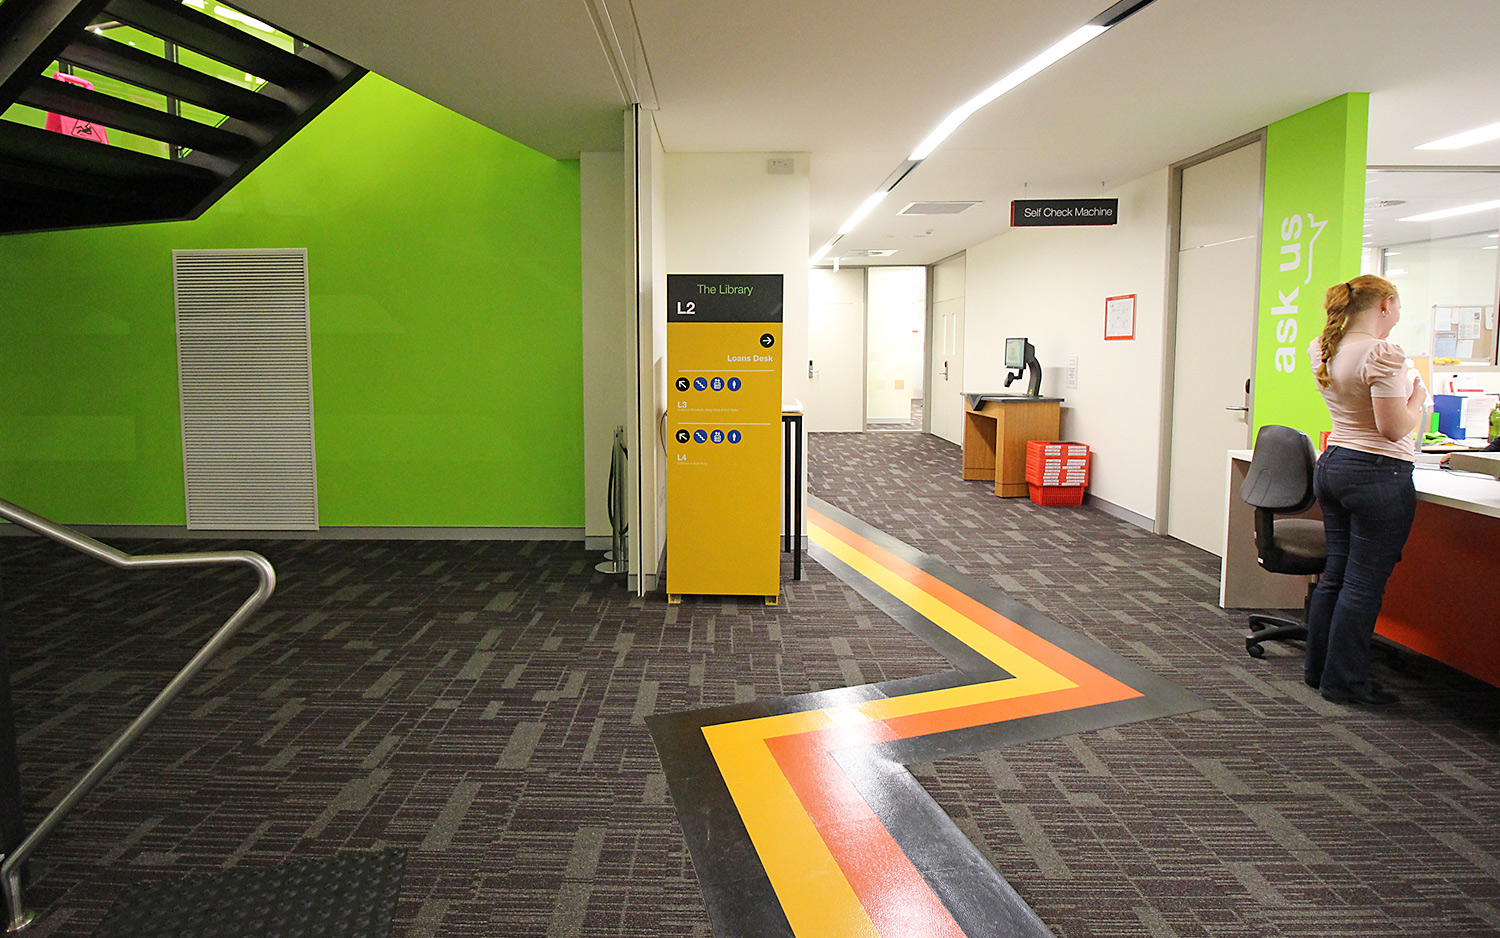 Wayfinding and signage for Charles Sturt University. Designed by JSD @enviromeant.com